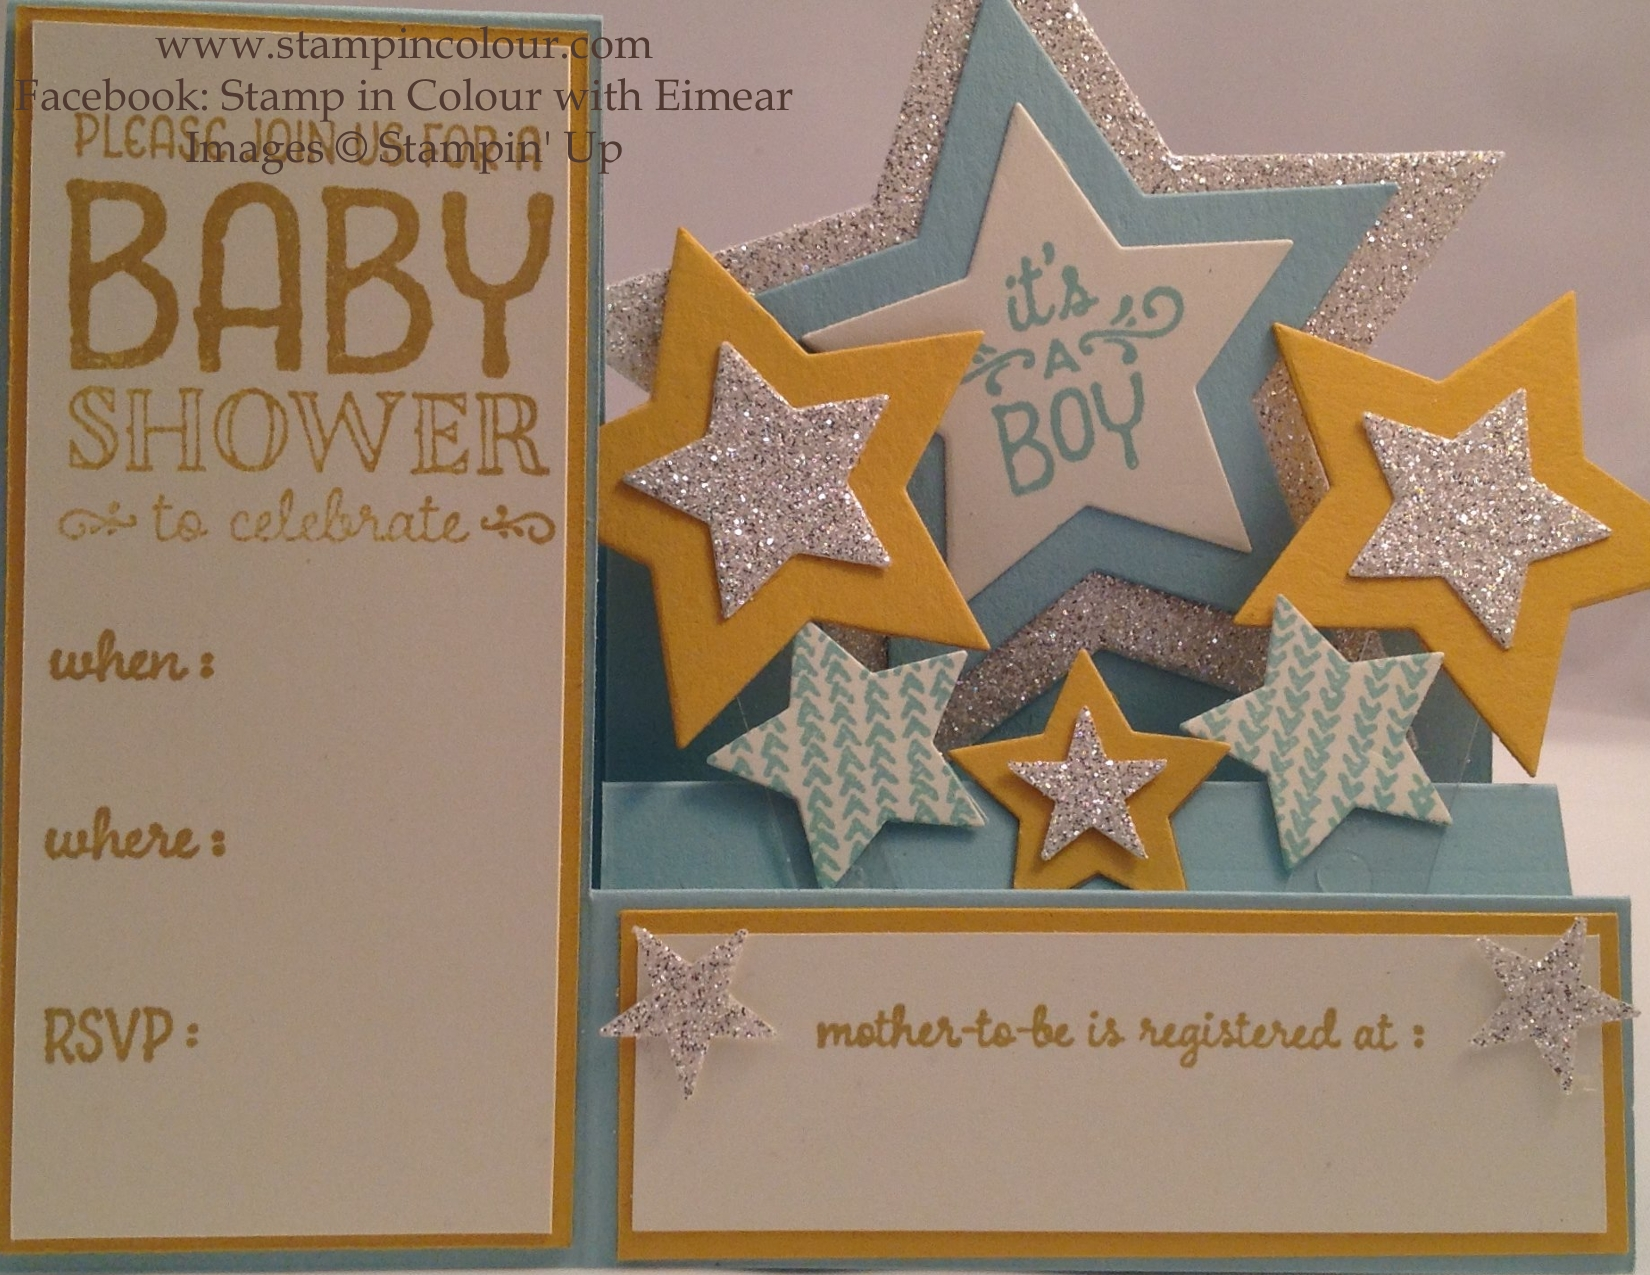 Stampin up sweet lil ones baby shower invitation 001 stampin up sweet lil ones baby shower invitation 001 filmwisefo